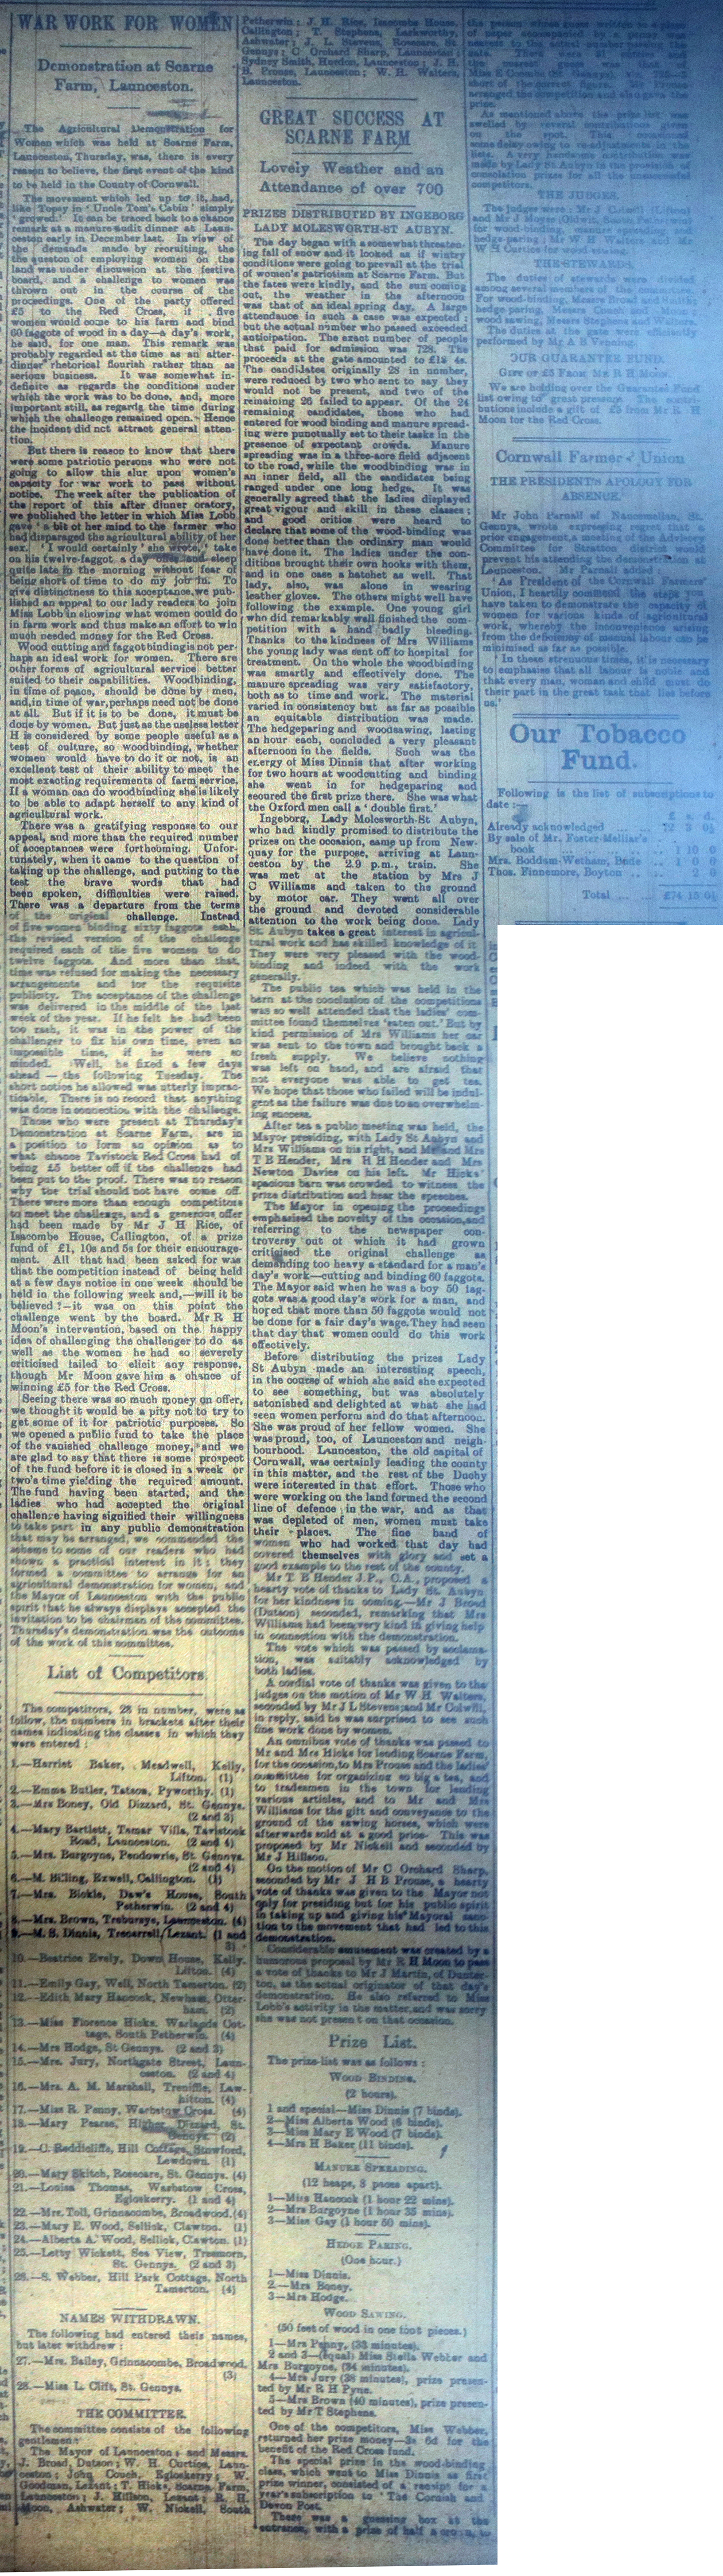 Scarne Demonstration Article March 11th, 1916